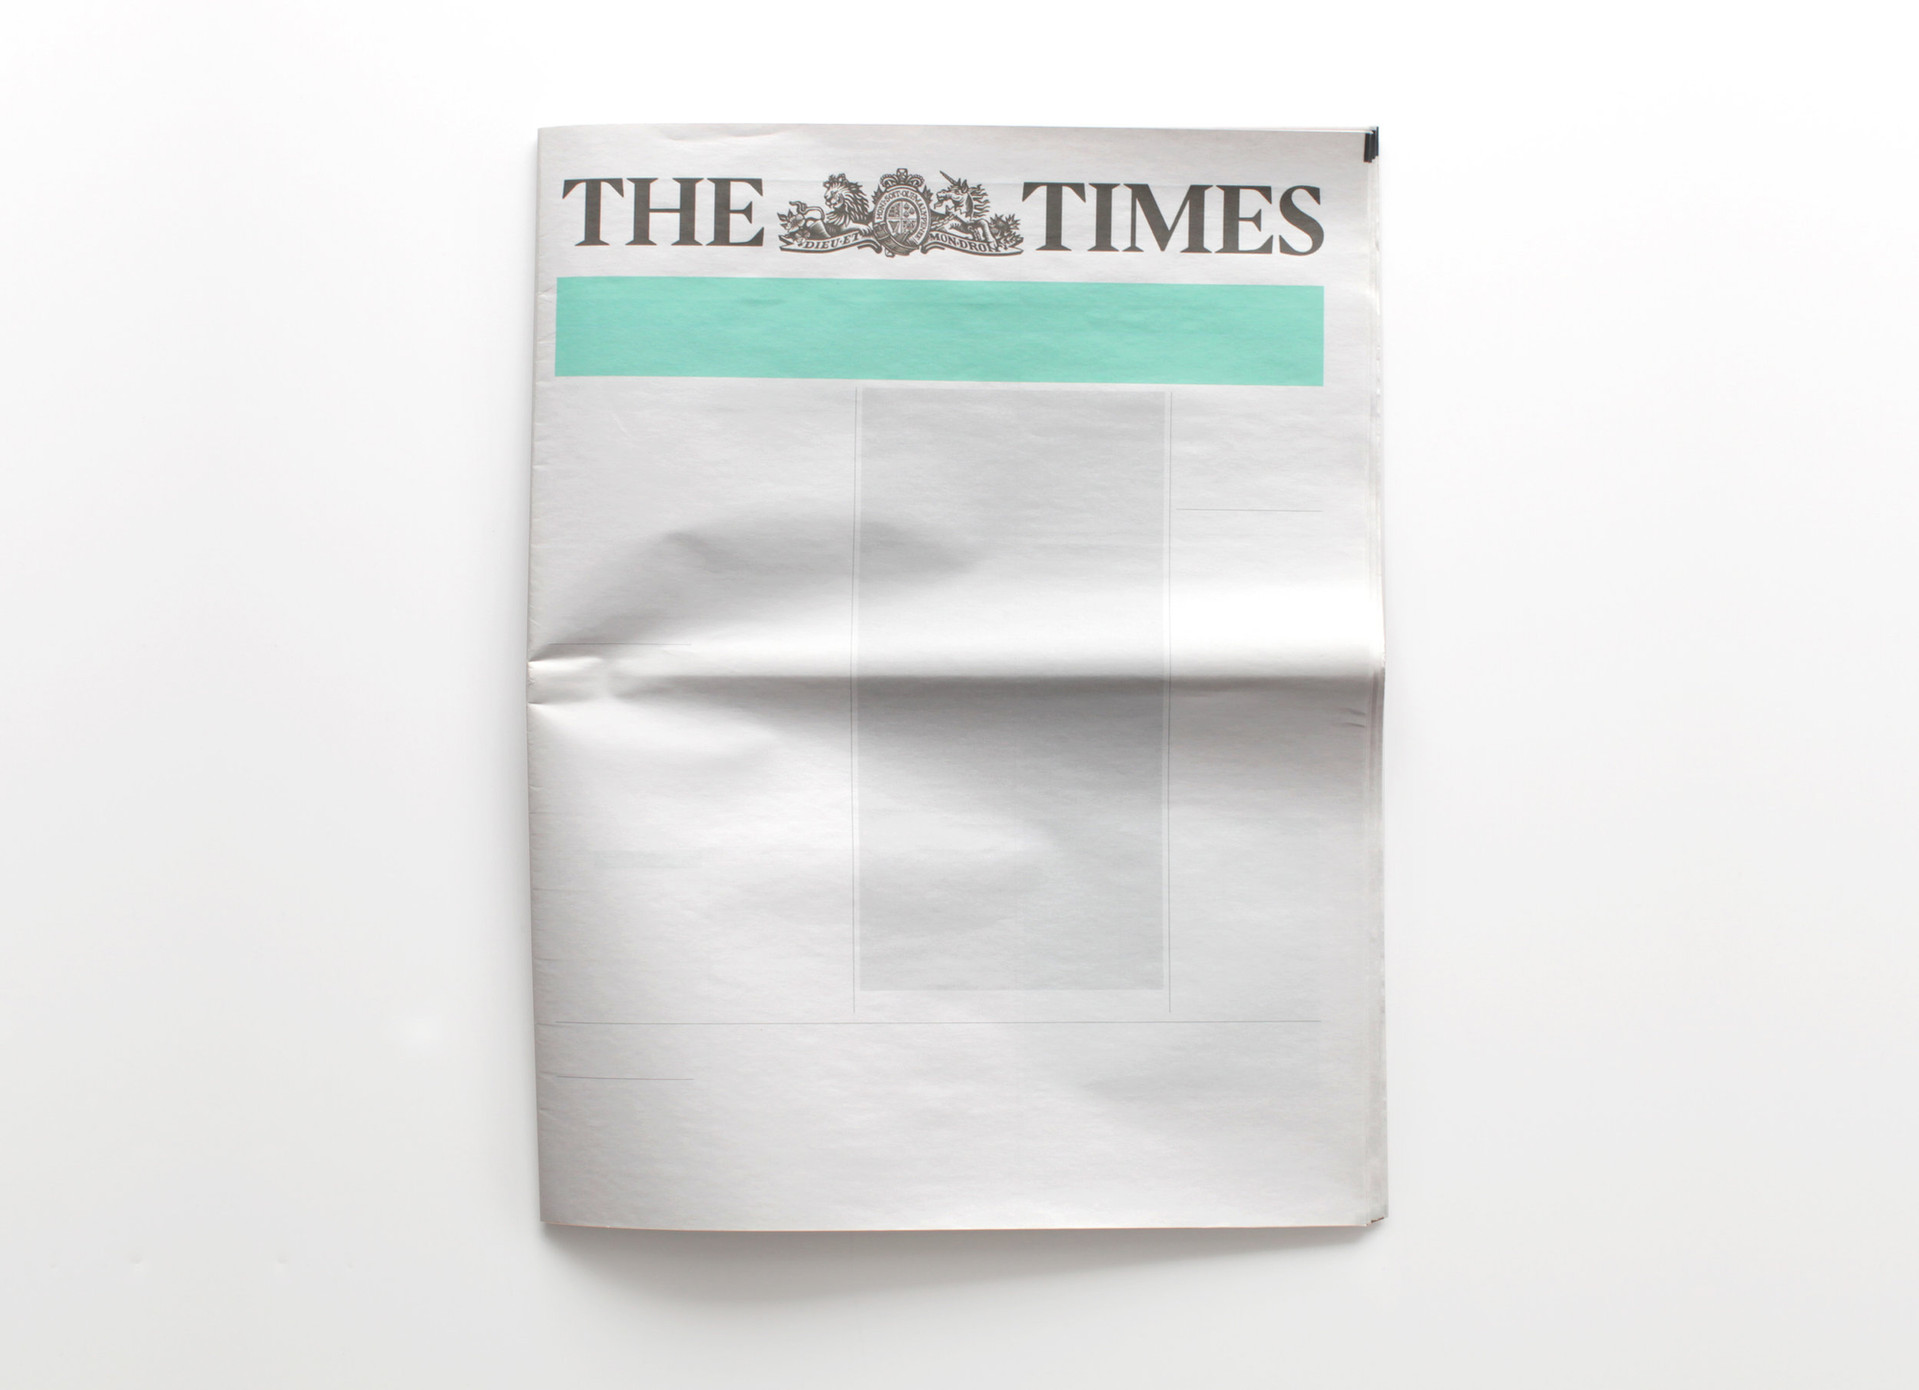 NOTHING IN THE TIMES: Newspapers from around the world with nothing in them.